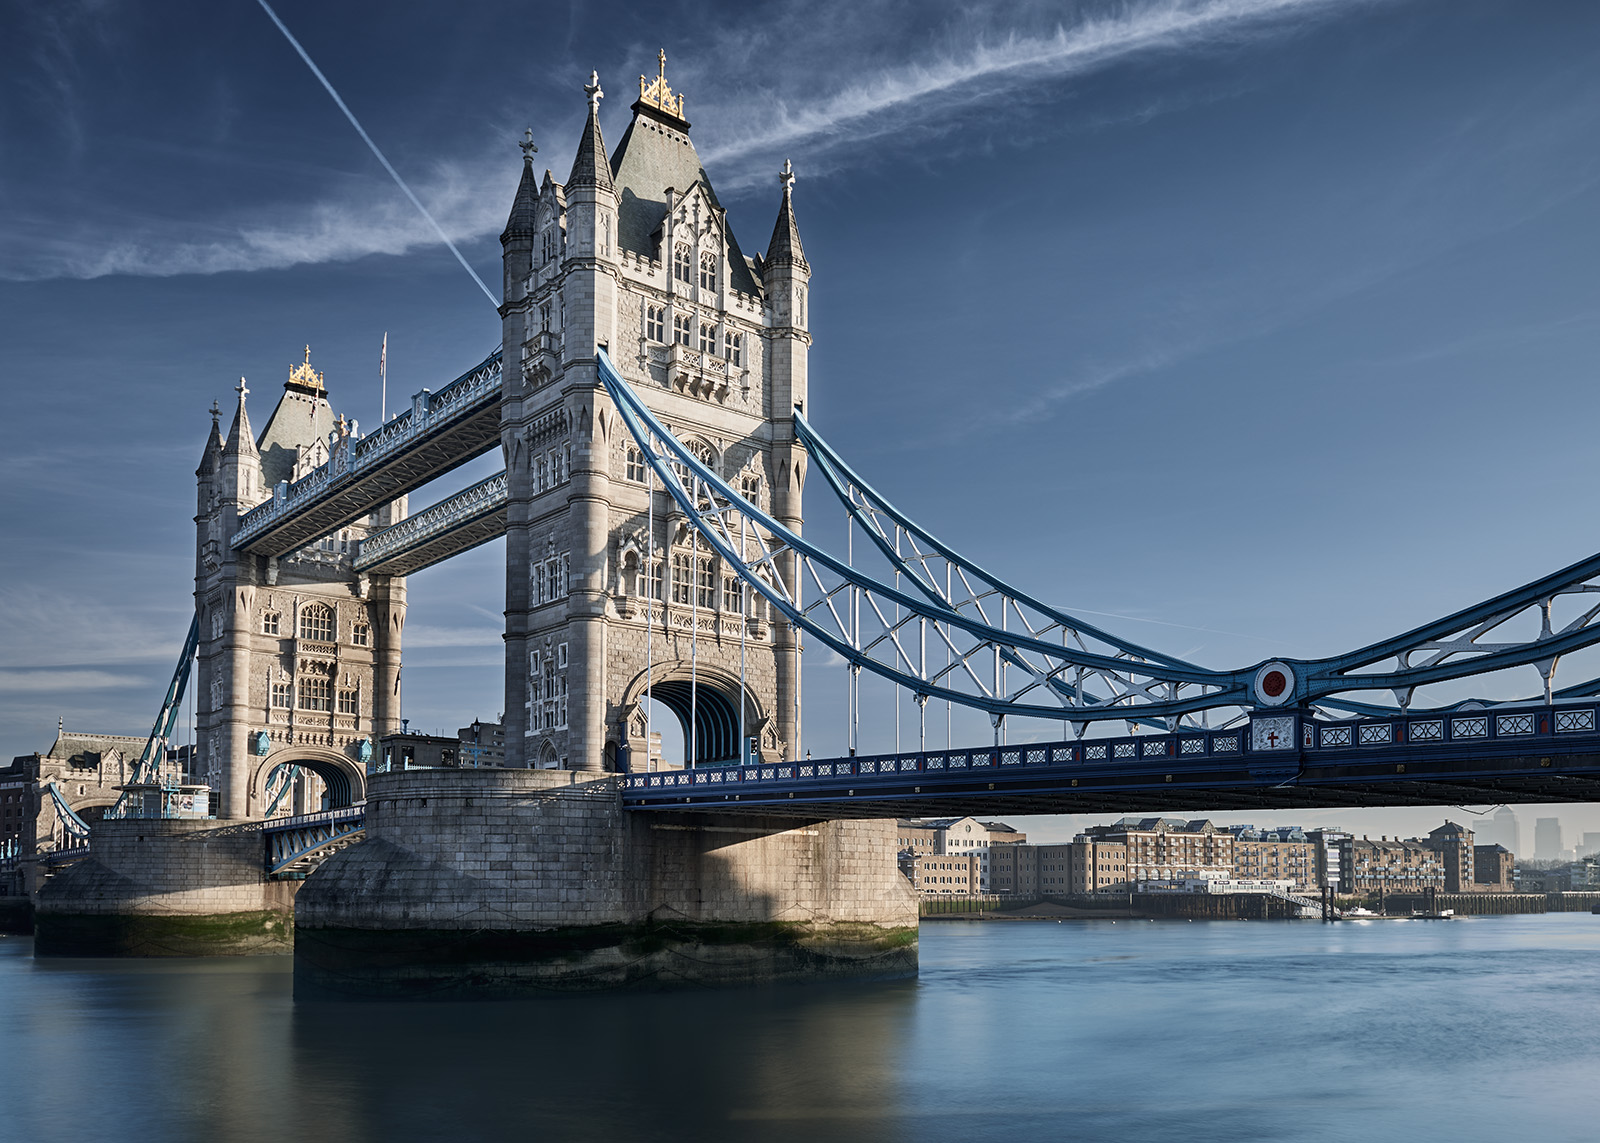 Tower Bridge morgenlys av Peder Aaserud Eikeland